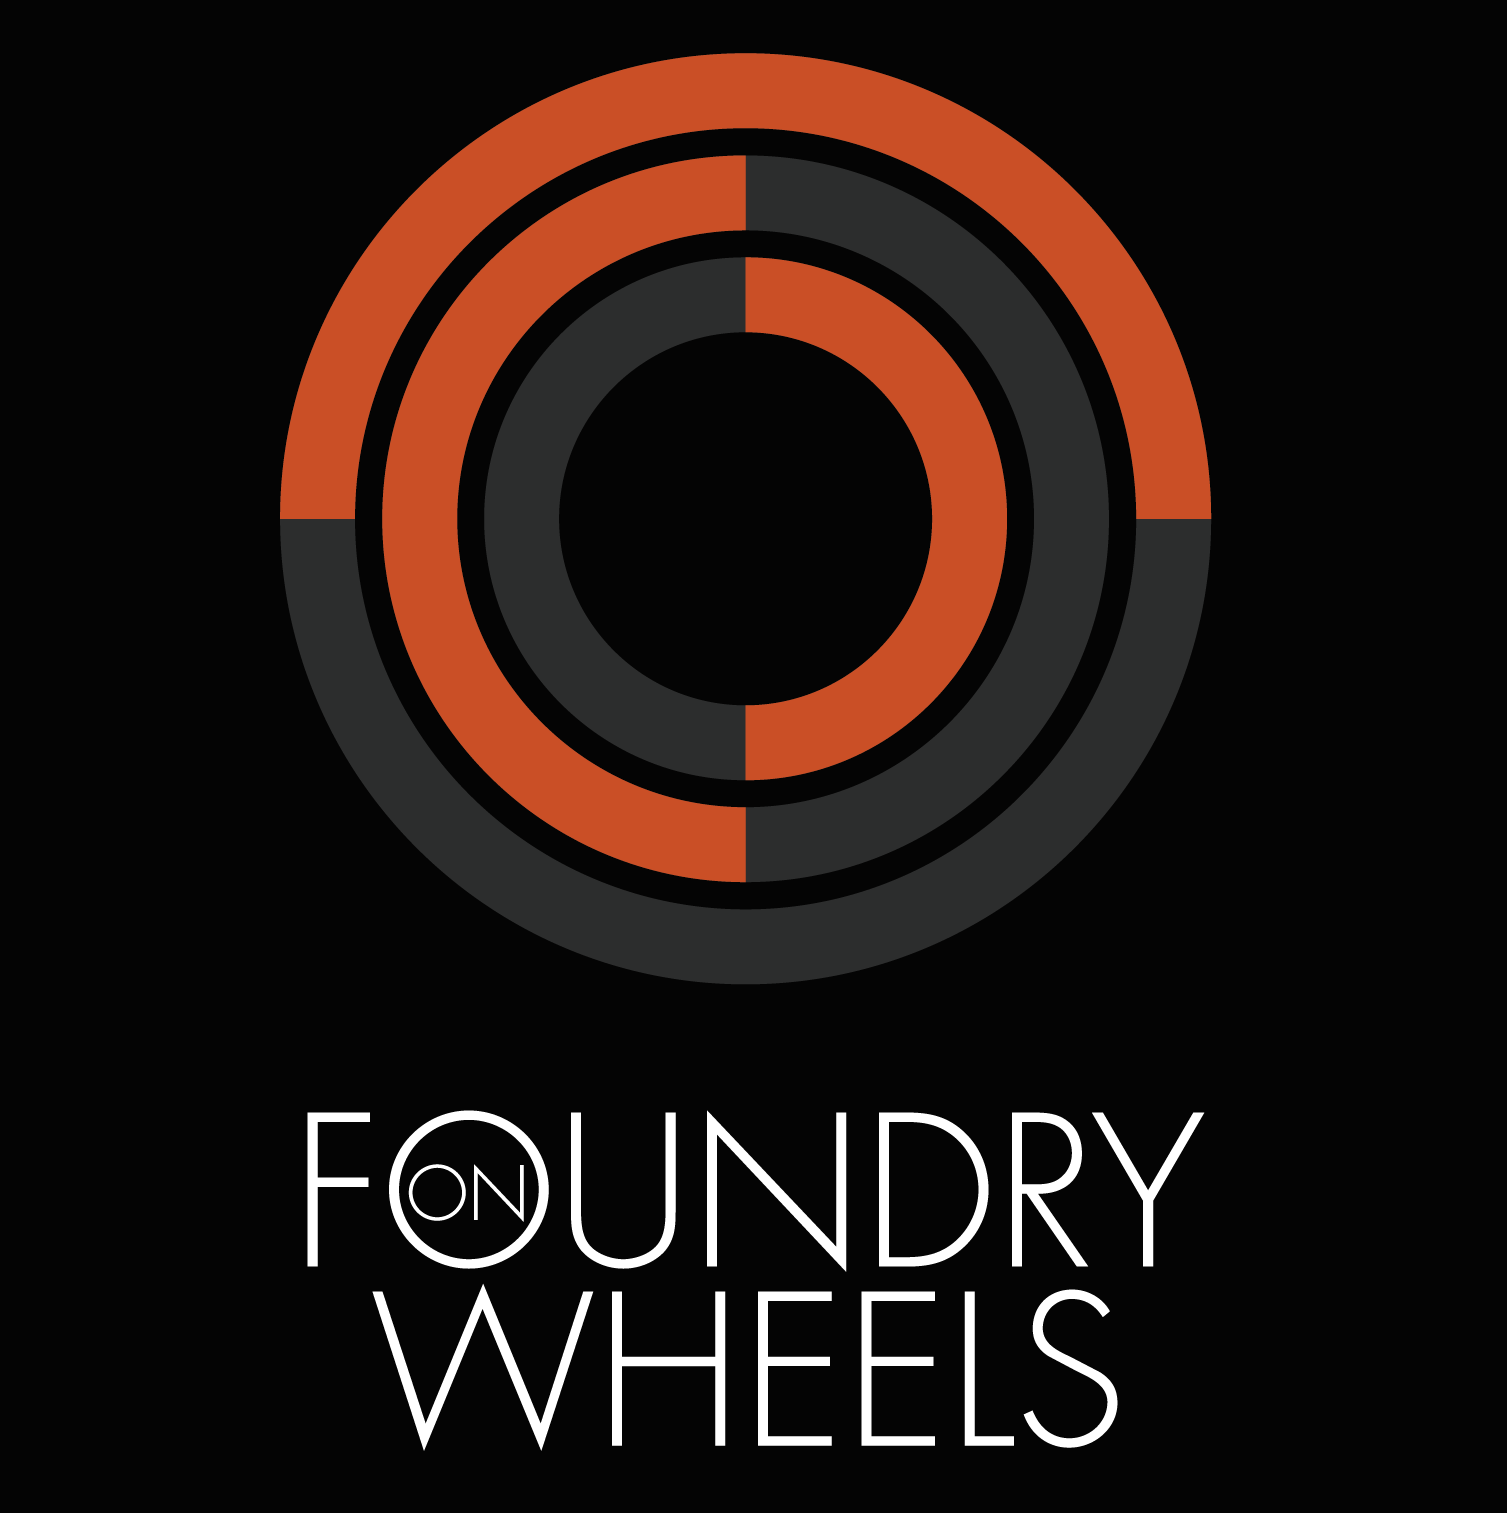 Foundry on Wheels 2017 | Grafik: Center for Innovation and Technology N. Mahalingam (CITNM)